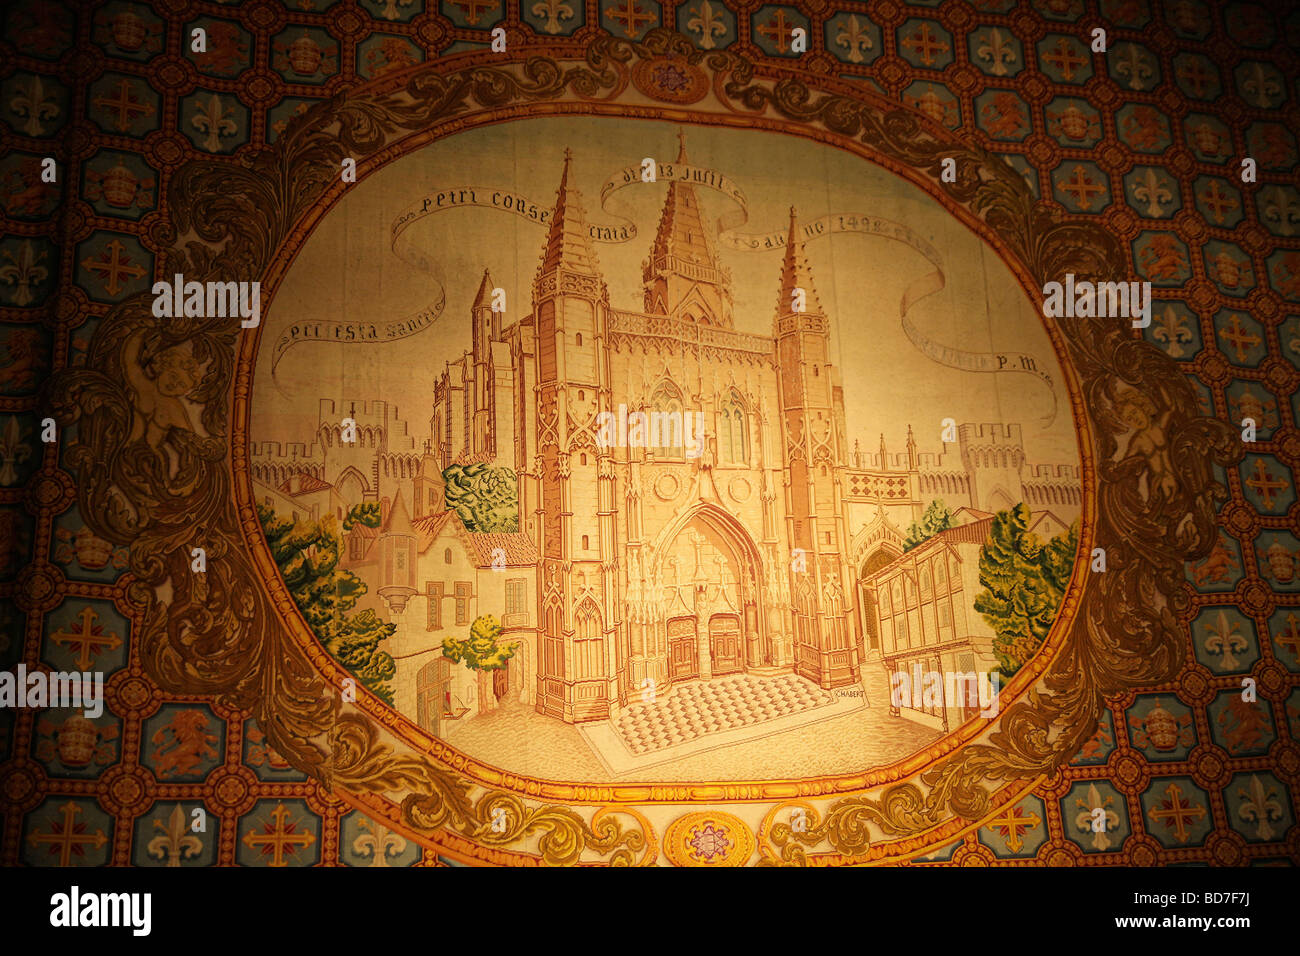 tapestry with church image inside Saint Pierre church in Avignon Provence France Europe - Stock Image